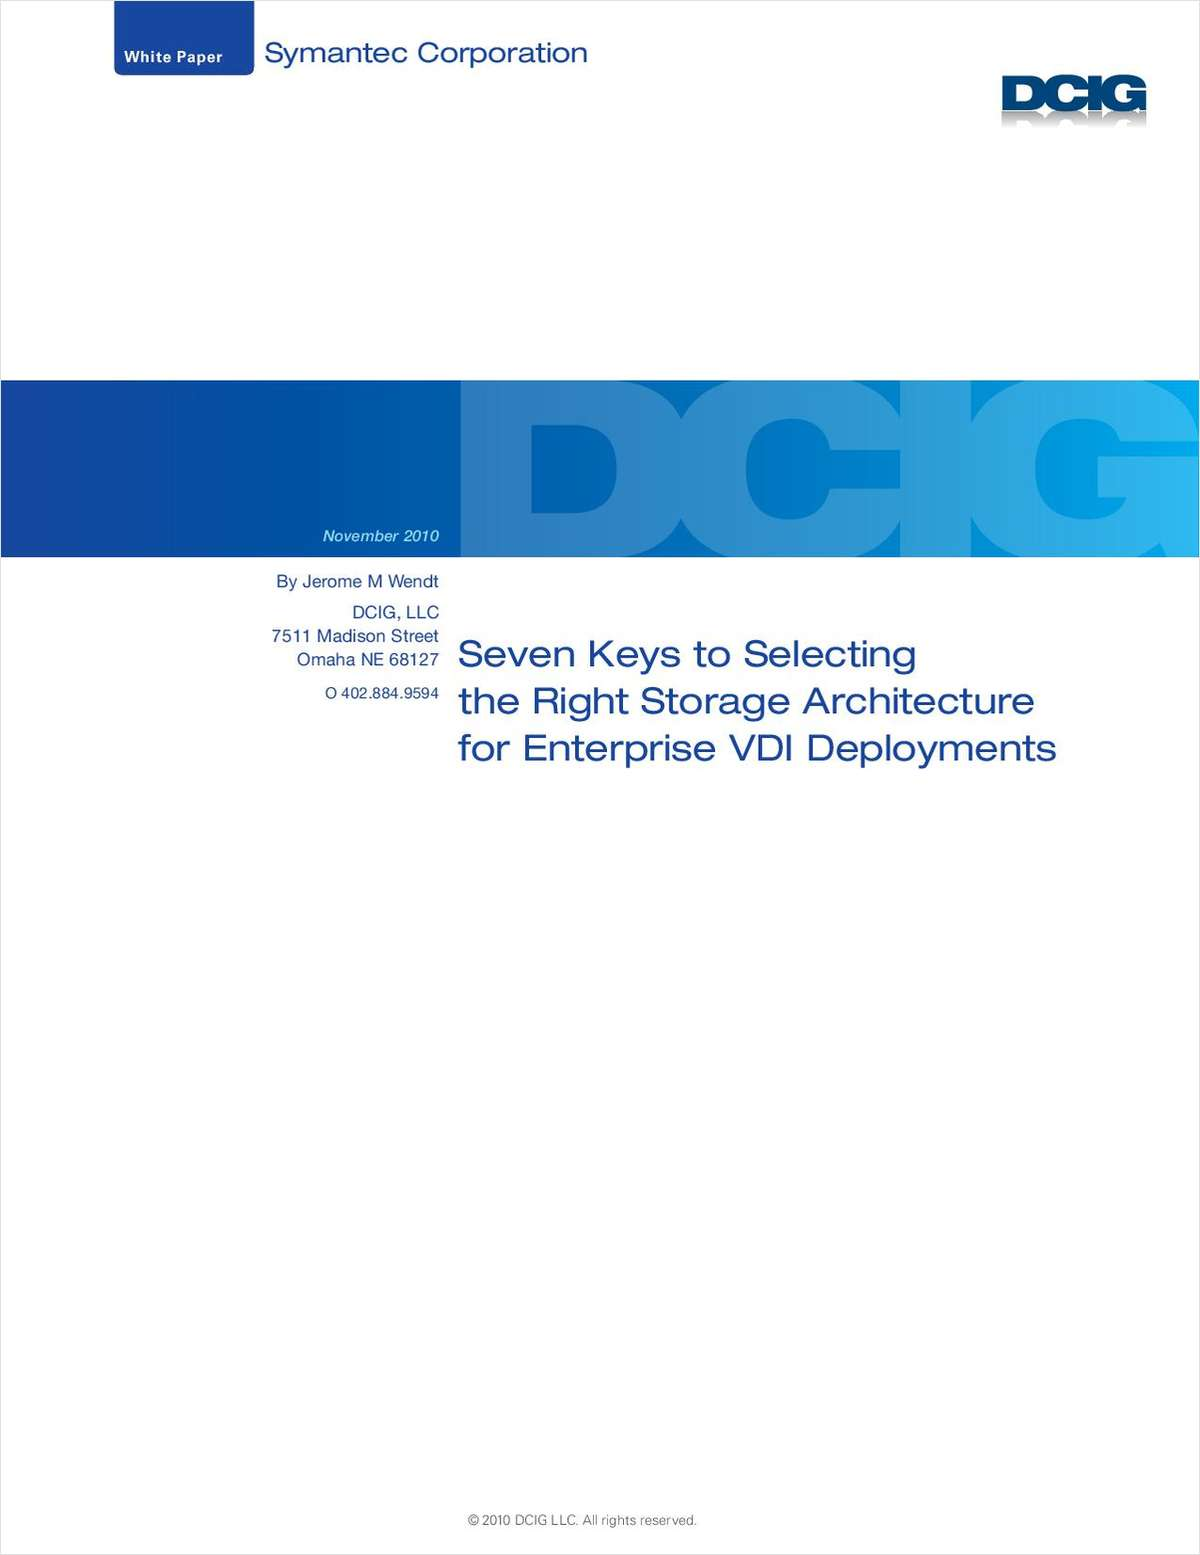 Seven Keys to Selecting the Right Storage Architecture for Enterprise VDI Deployments